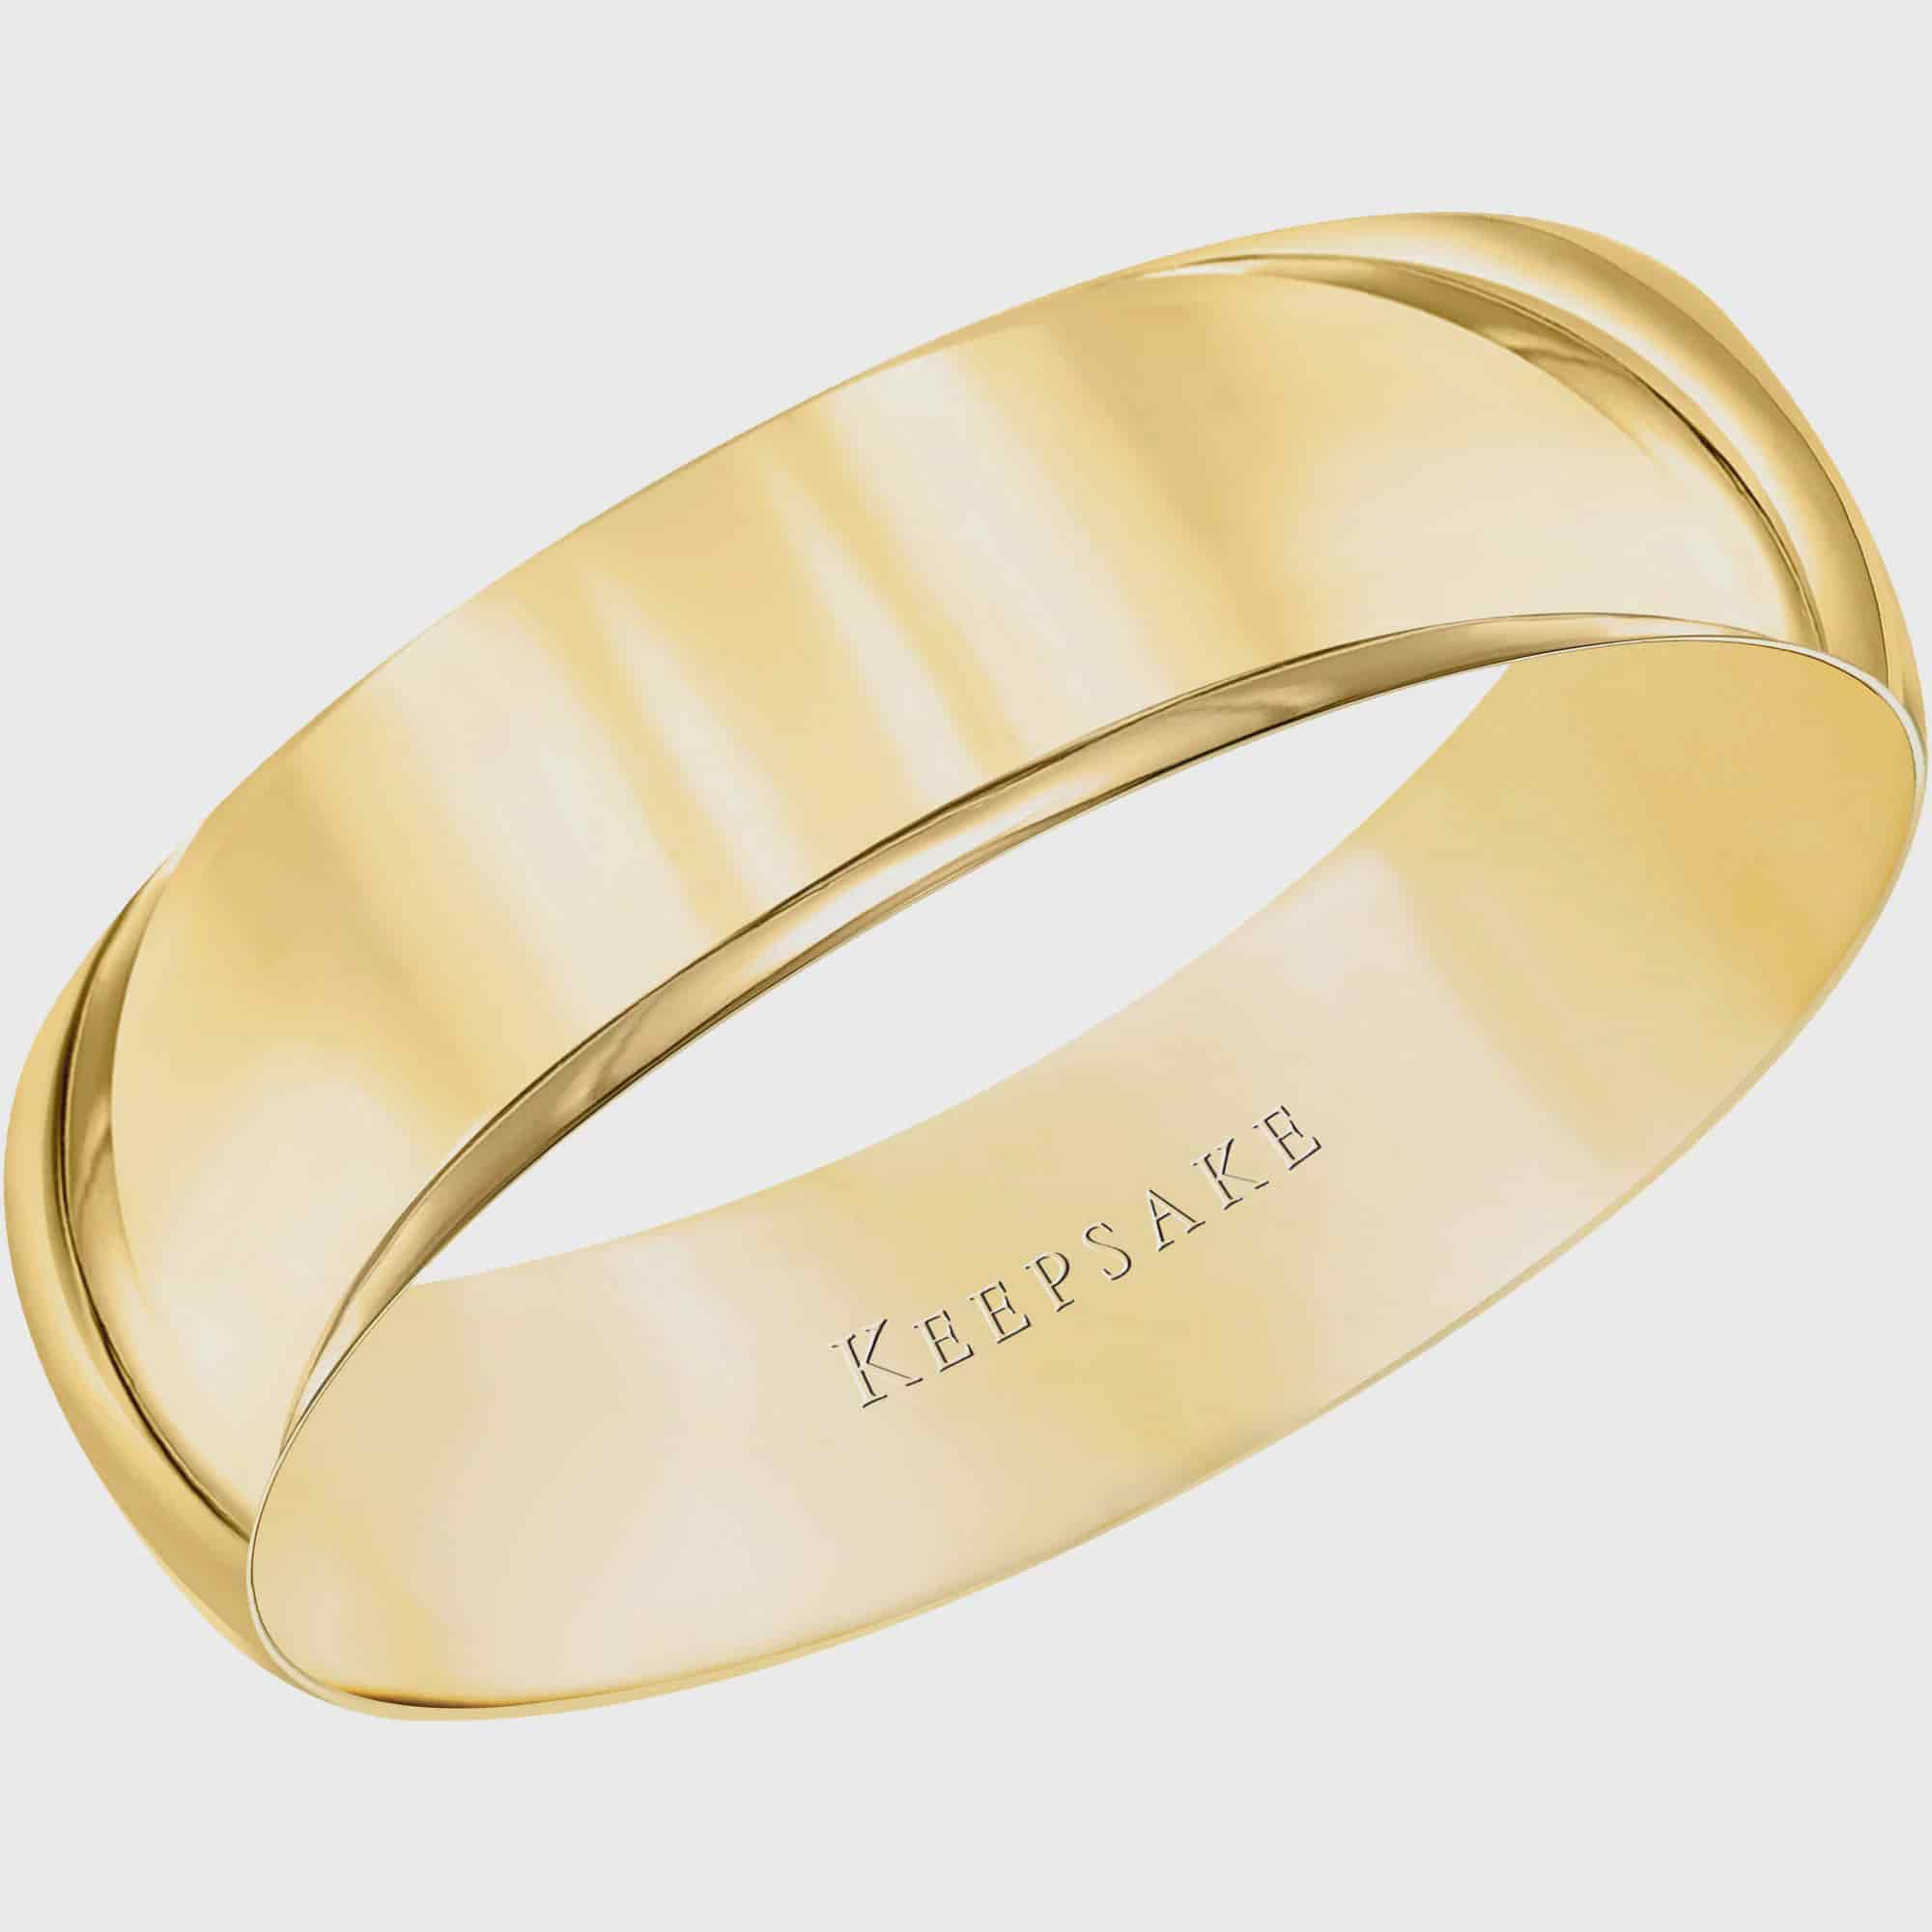 Keepsake 10kt Yellow Gold Wedding Band With HighPolish Finish